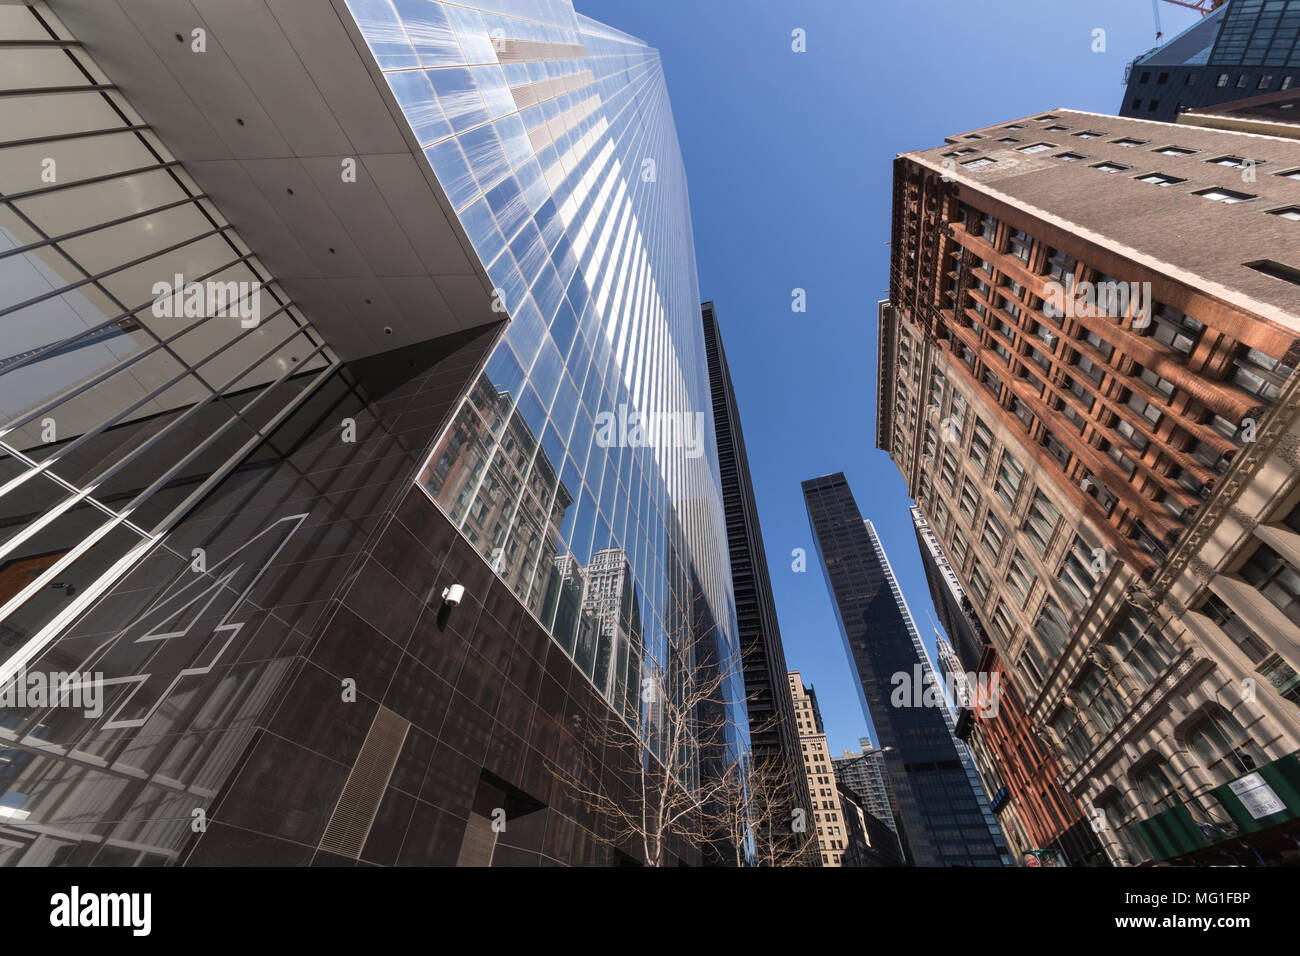 Four World Trade Center in lower Manhattan, New York, NY - Stock Image